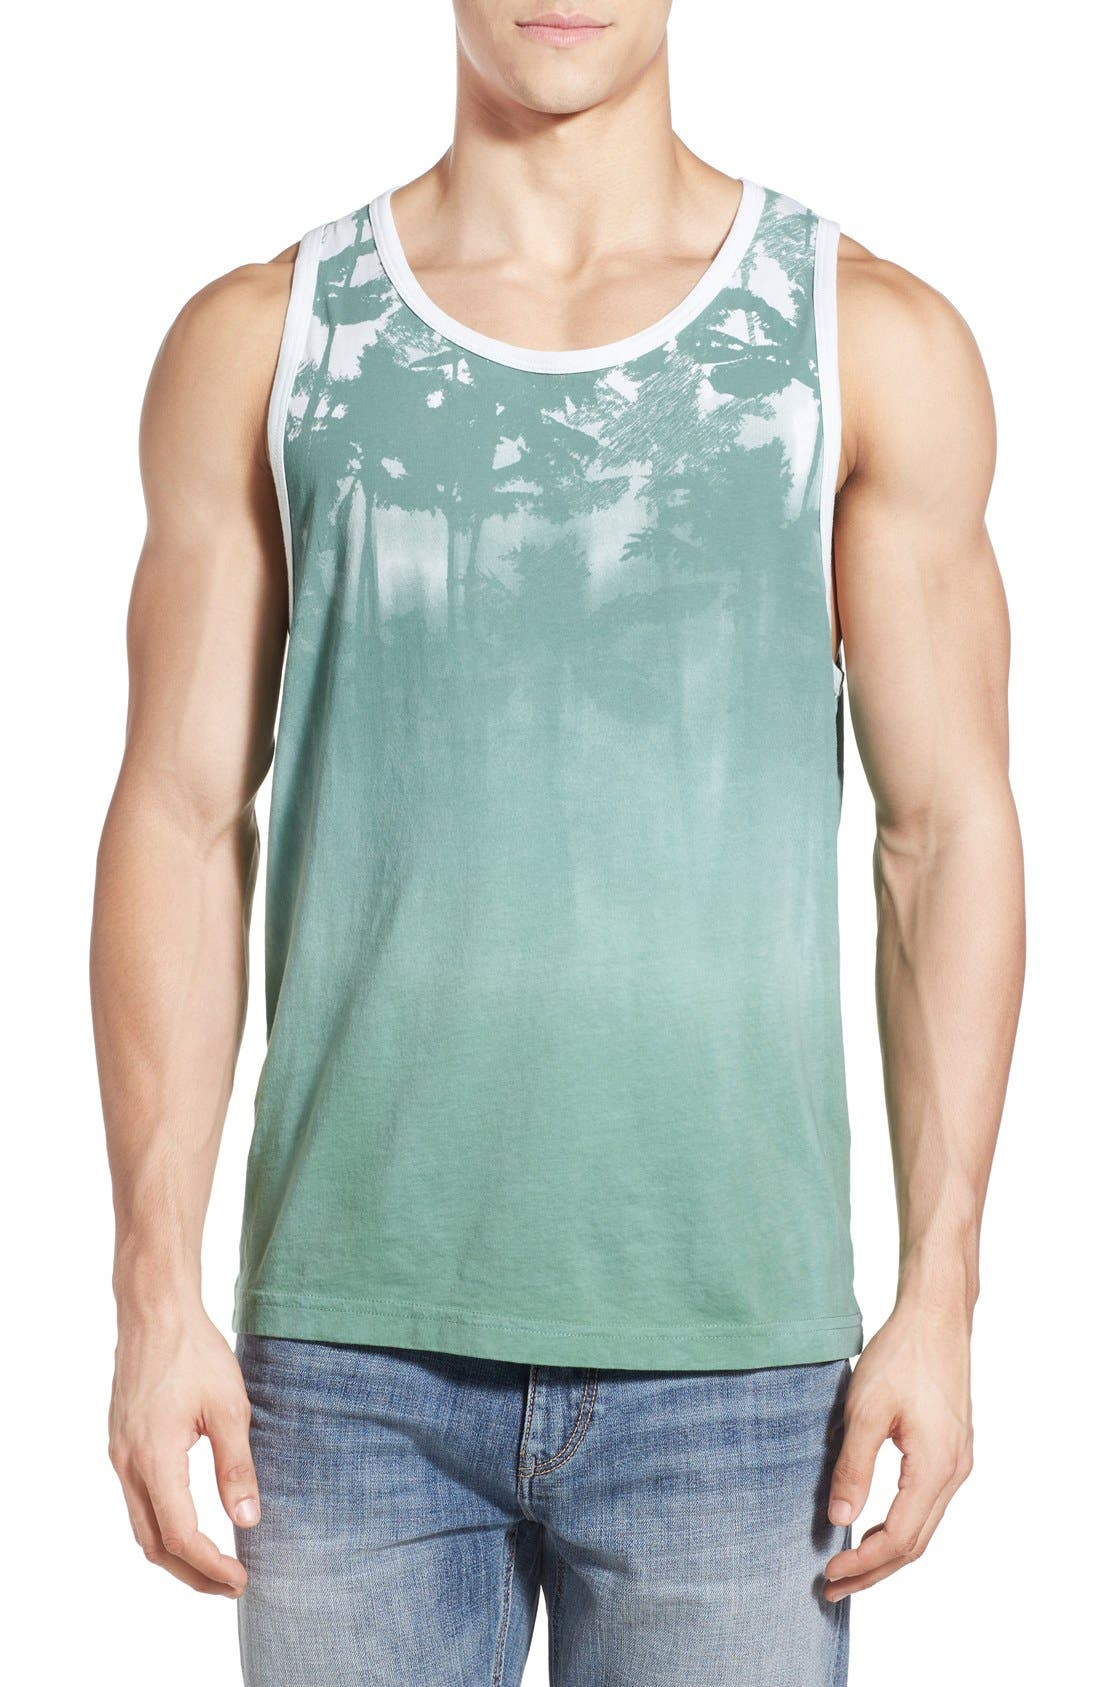 VESTIGE 'Lost' Shadow Palm Print Tank